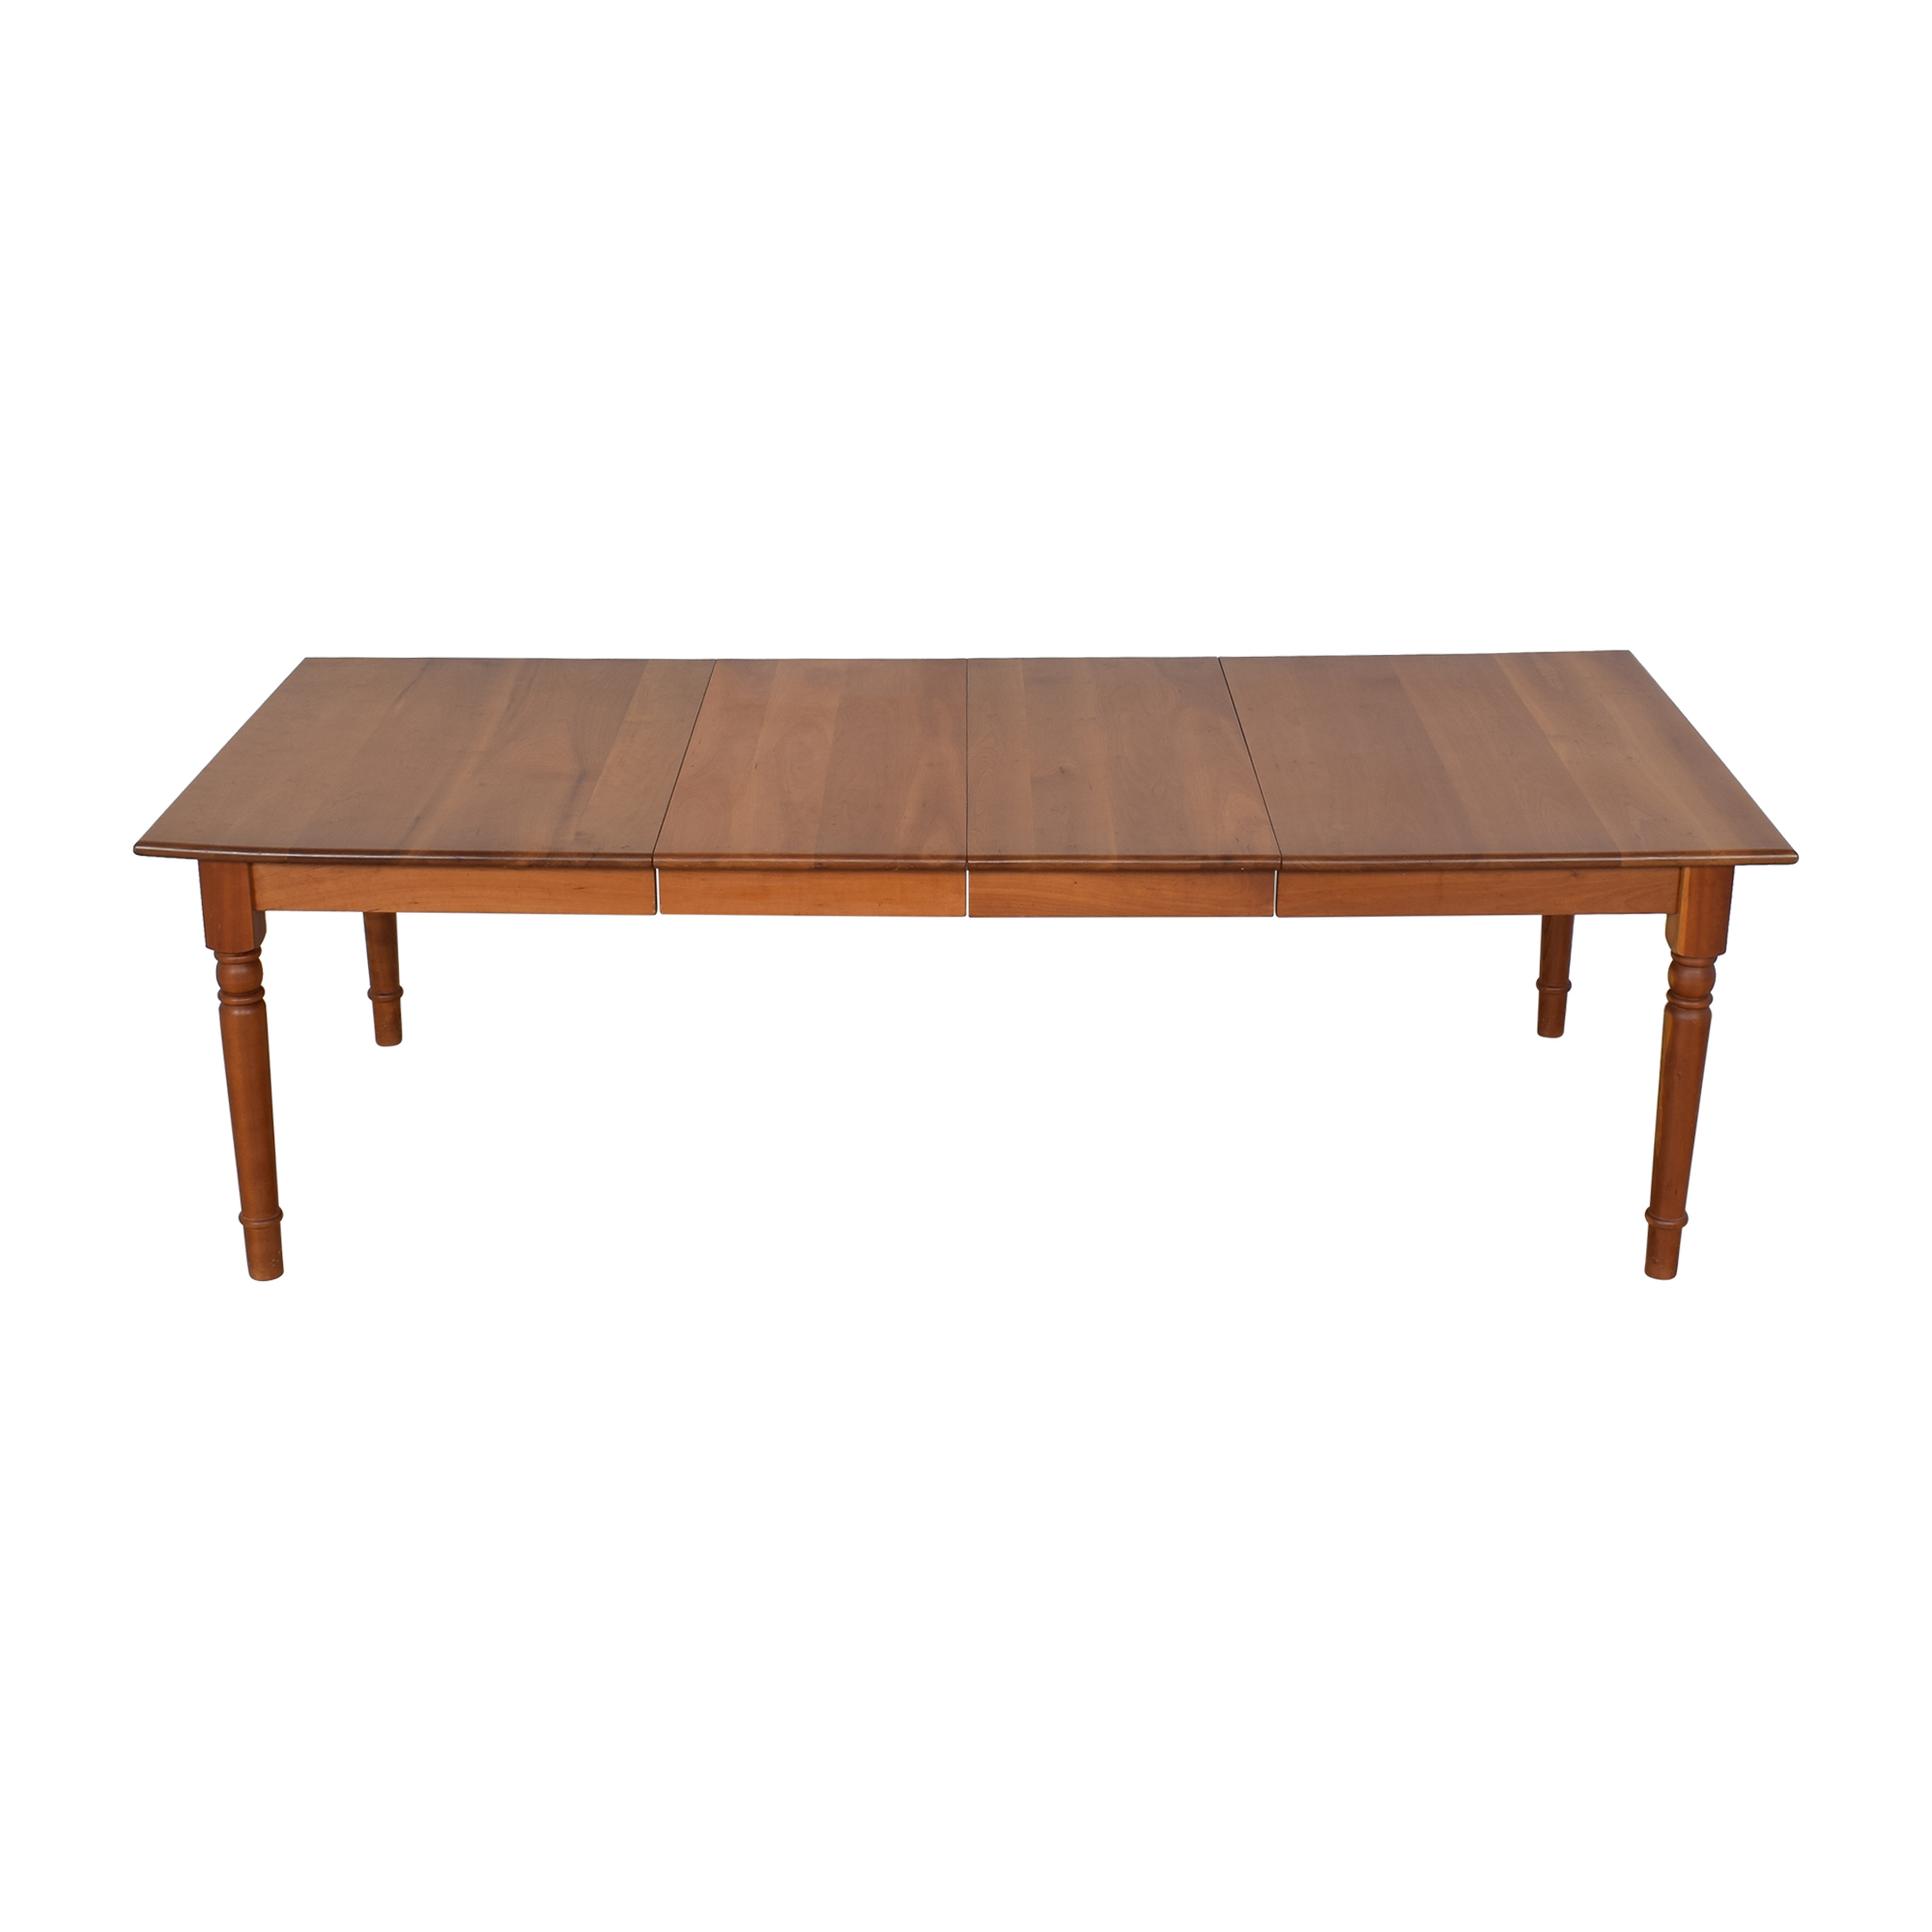 Asher Benjamin Studio Asher Benjamin Studio Extended Dining Table Dinner Tables